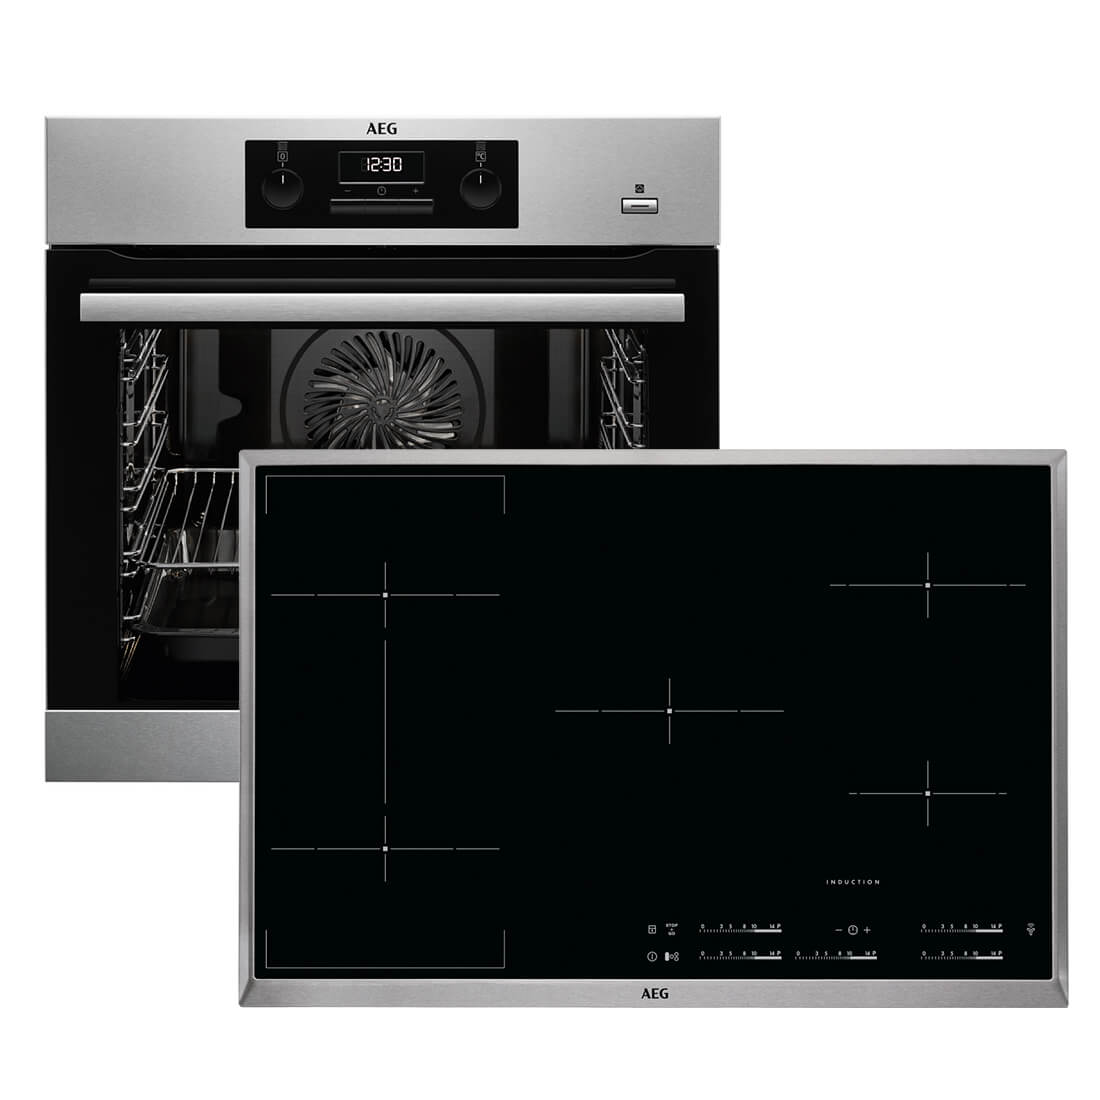 aeg beb357 backofen set beb351010m backofen hkl85510x b autark induktions ko ebay. Black Bedroom Furniture Sets. Home Design Ideas